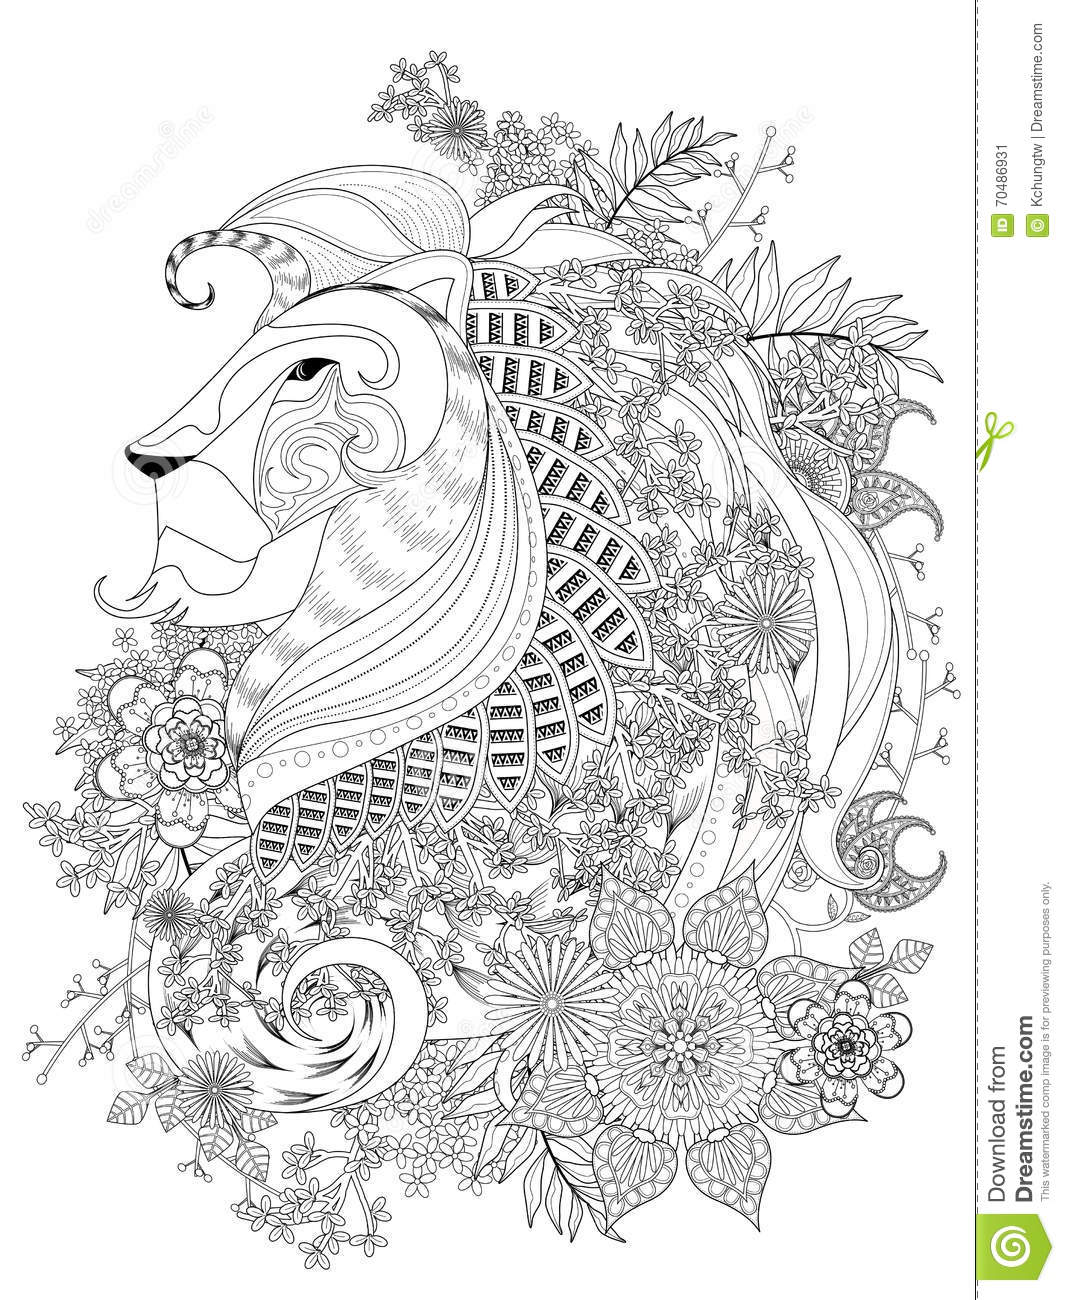 Lion adult coloring page stock vector. Illustration of background ...